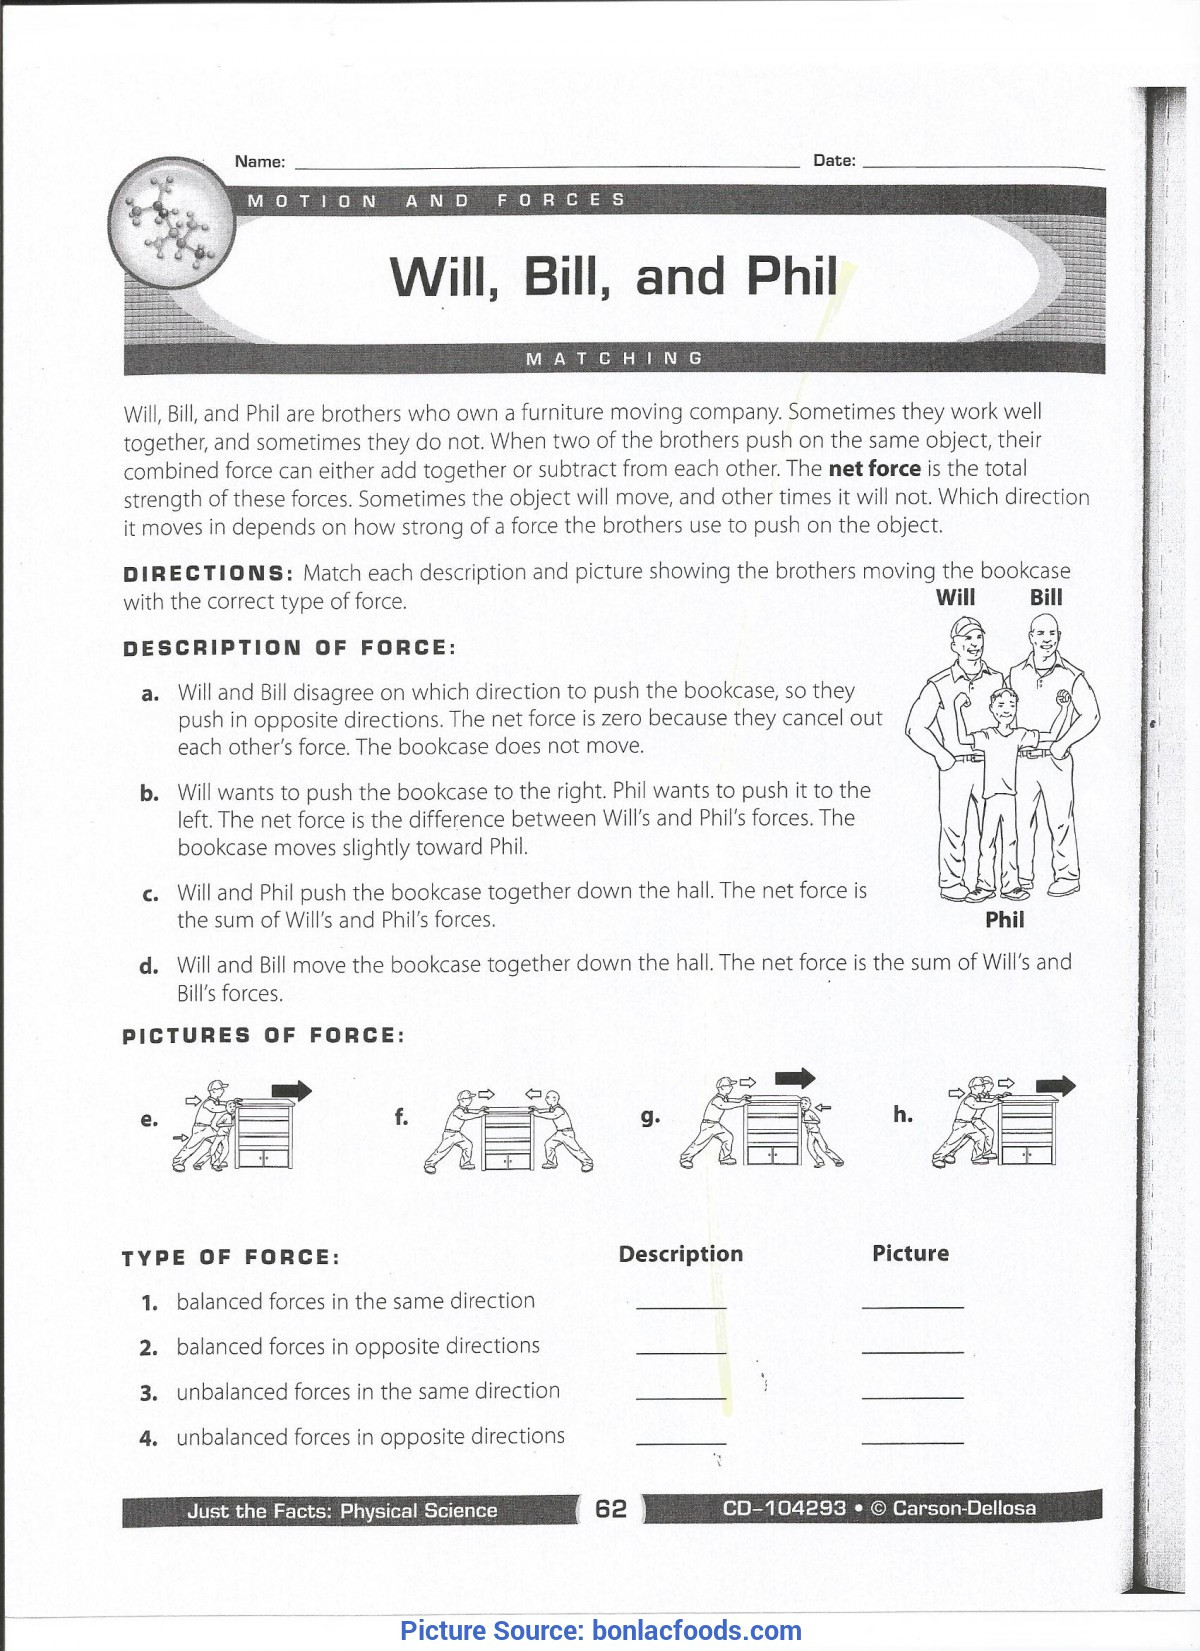 Scientific Method Worksheets 5th Grade Excellent 3rd Grade Lesson Plans force and Motion 5th